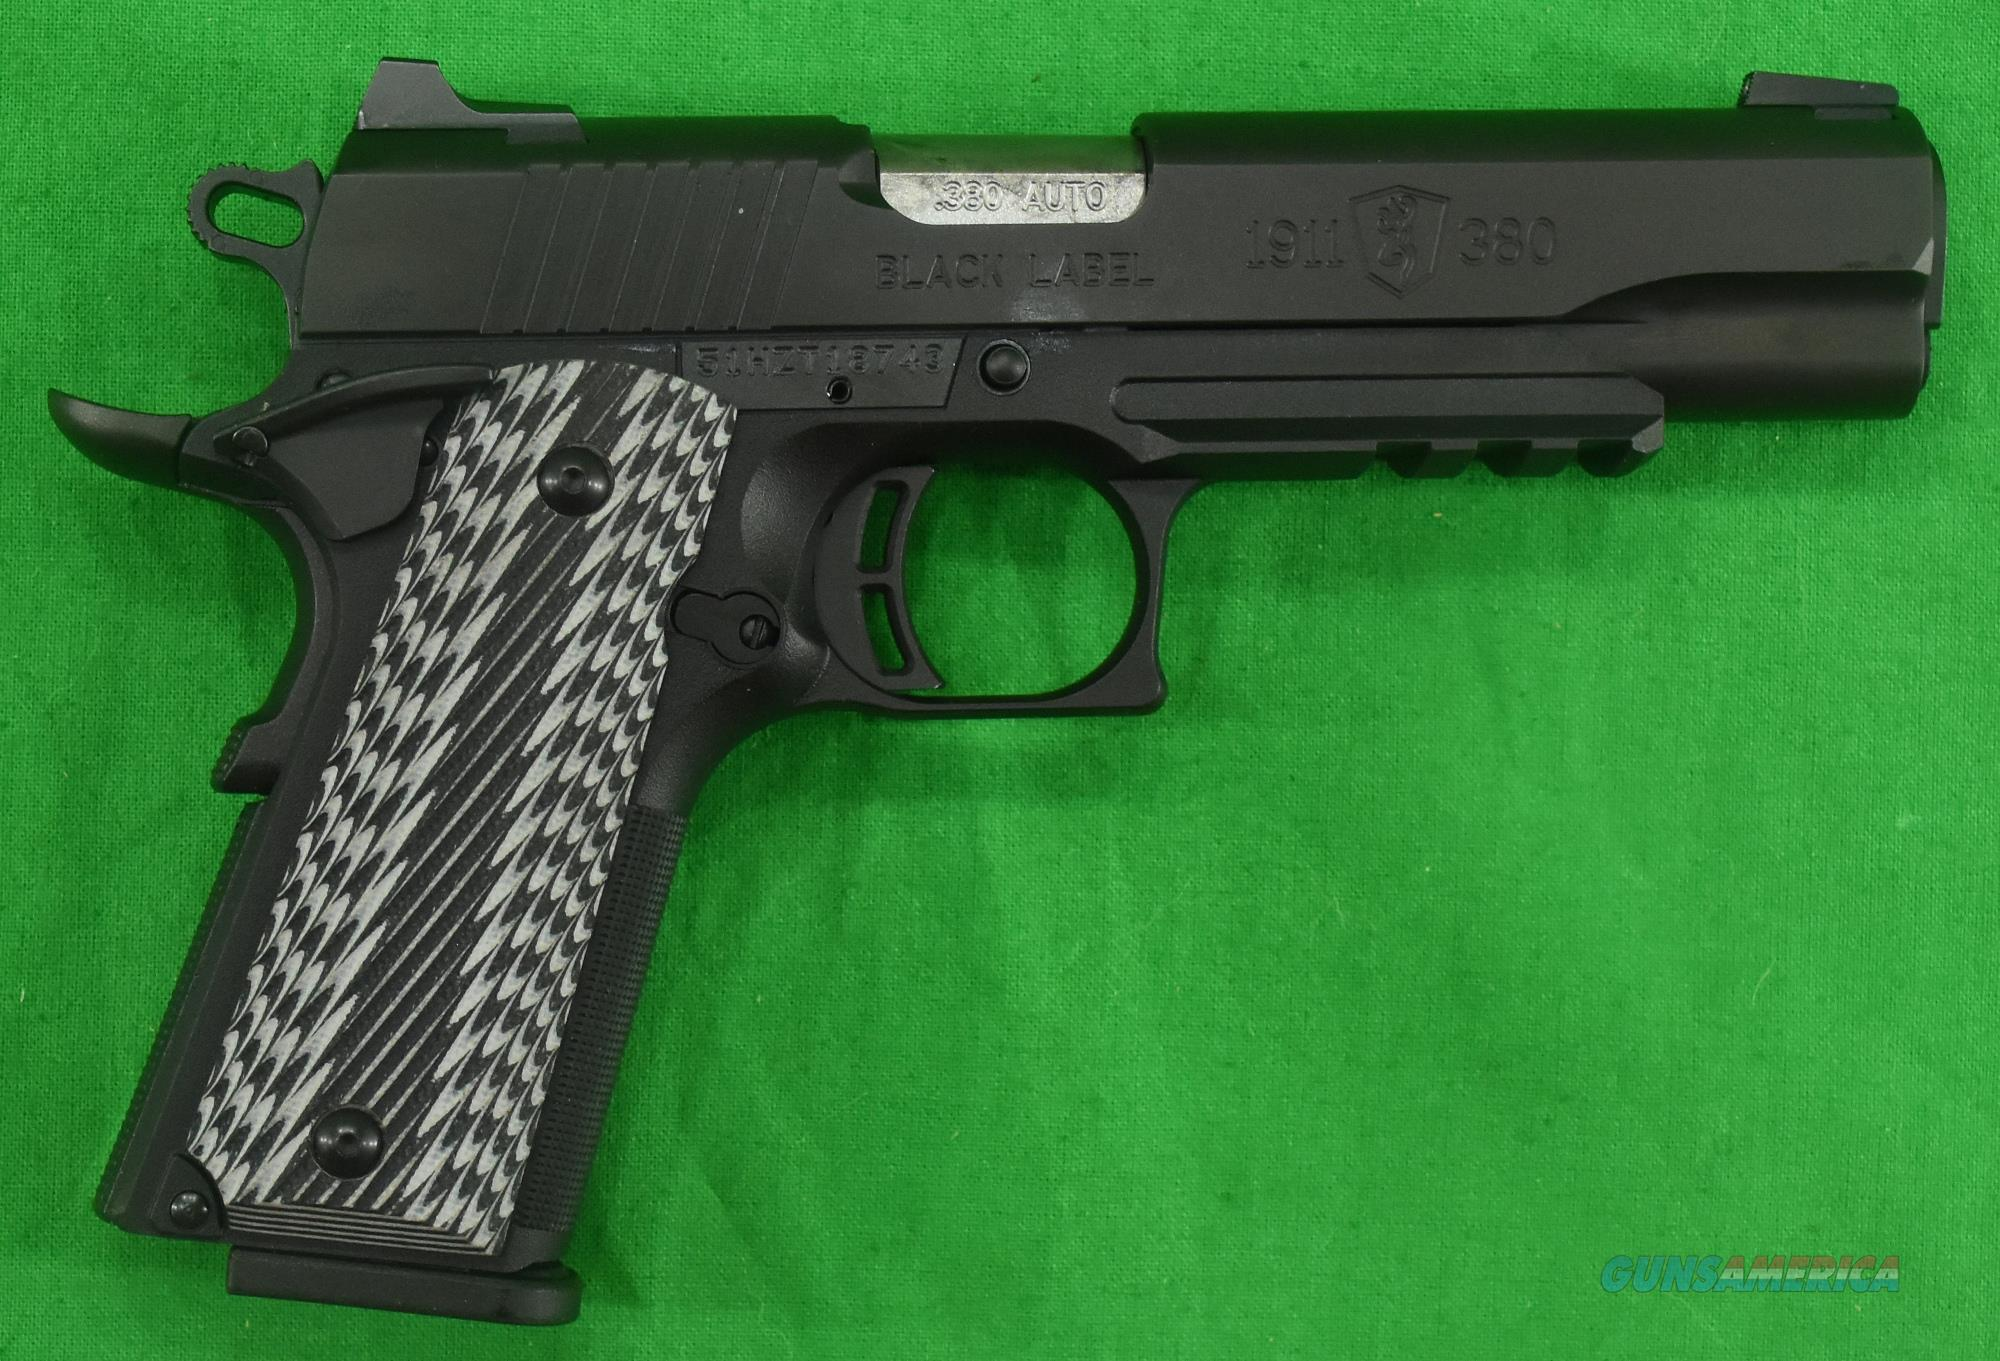 1911 Black Label G10 RL 380ACP 4.2In  051907492  Guns > Pistols > Browning Pistols > Other Autos